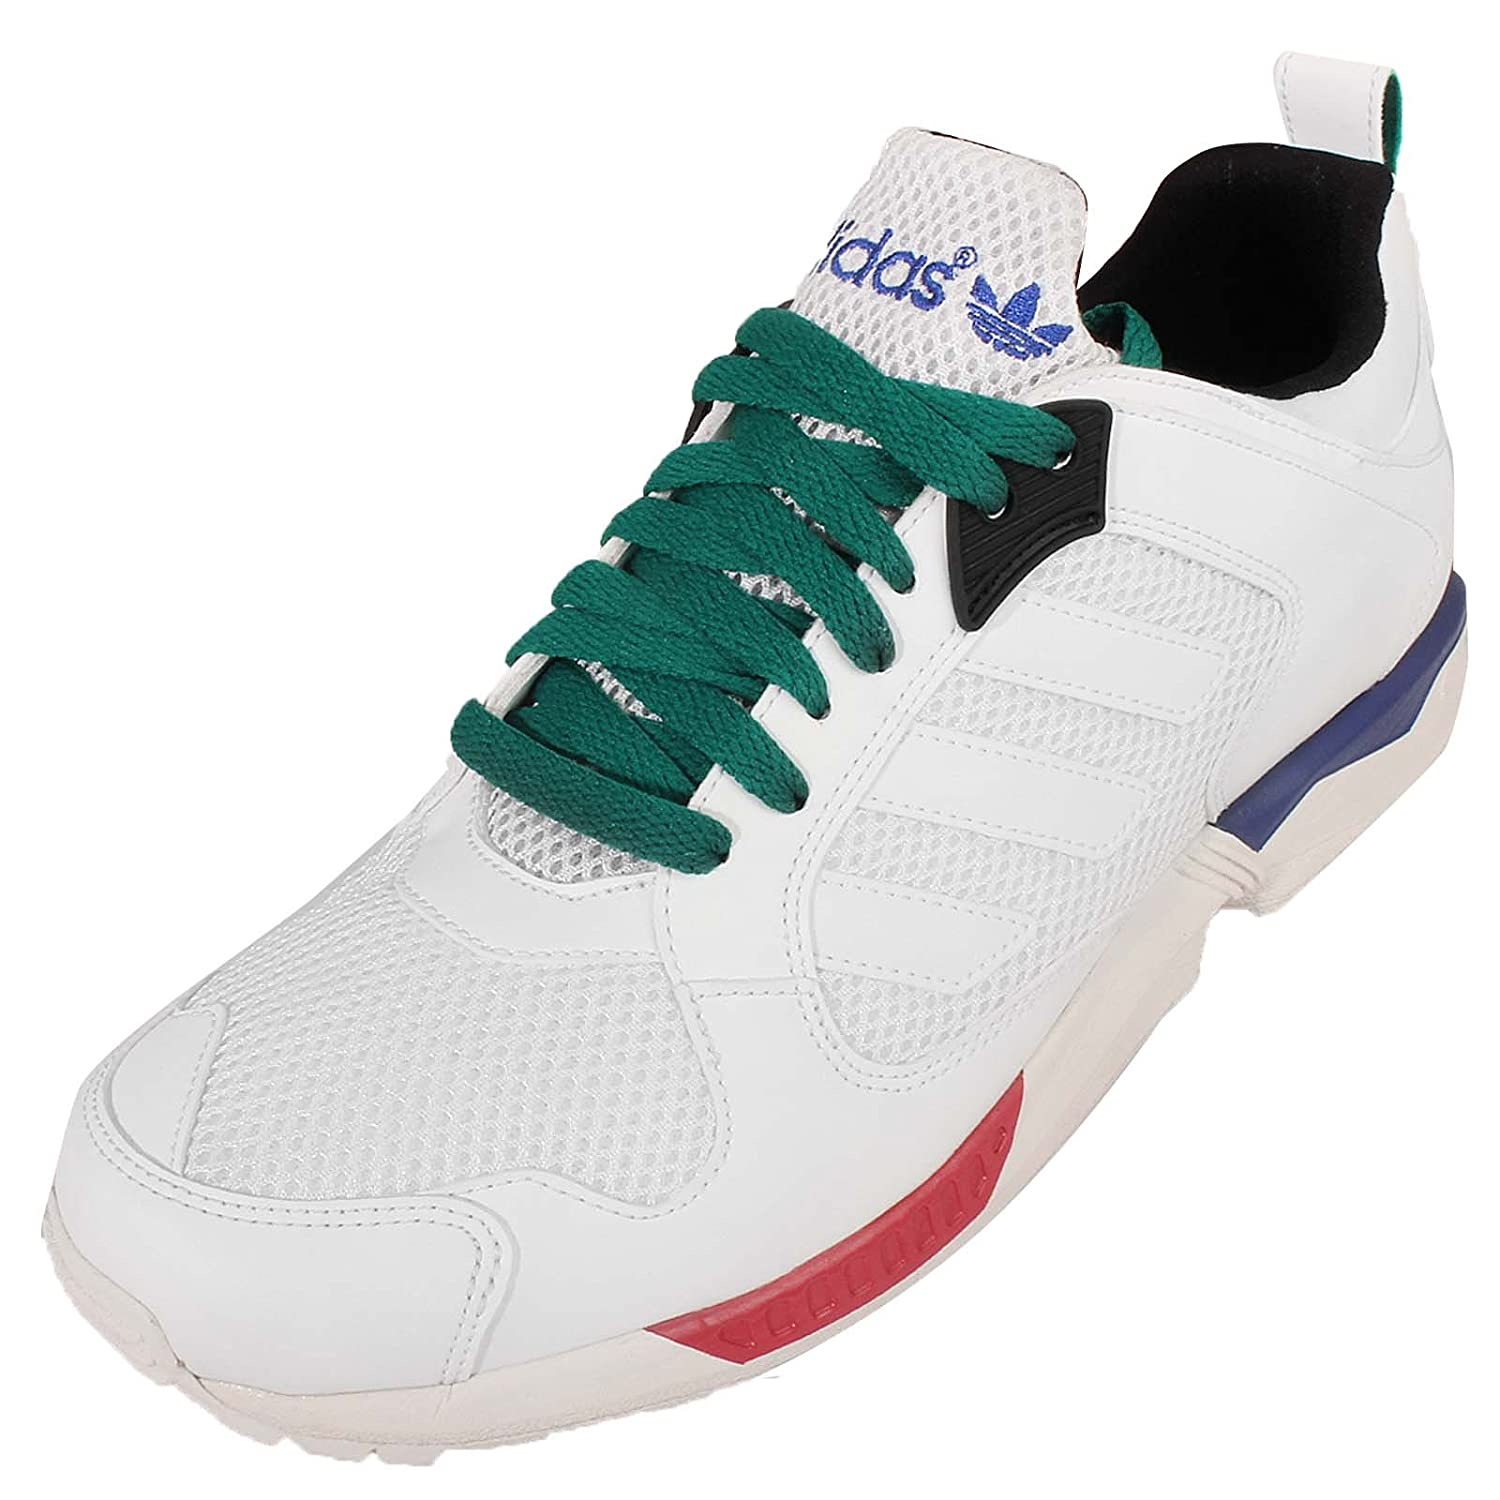 36dd5c252811 adidas ZX 5000 RSPN - B24829 Size  3 UK Cream-White  Amazon.co.uk  Shoes    Bags